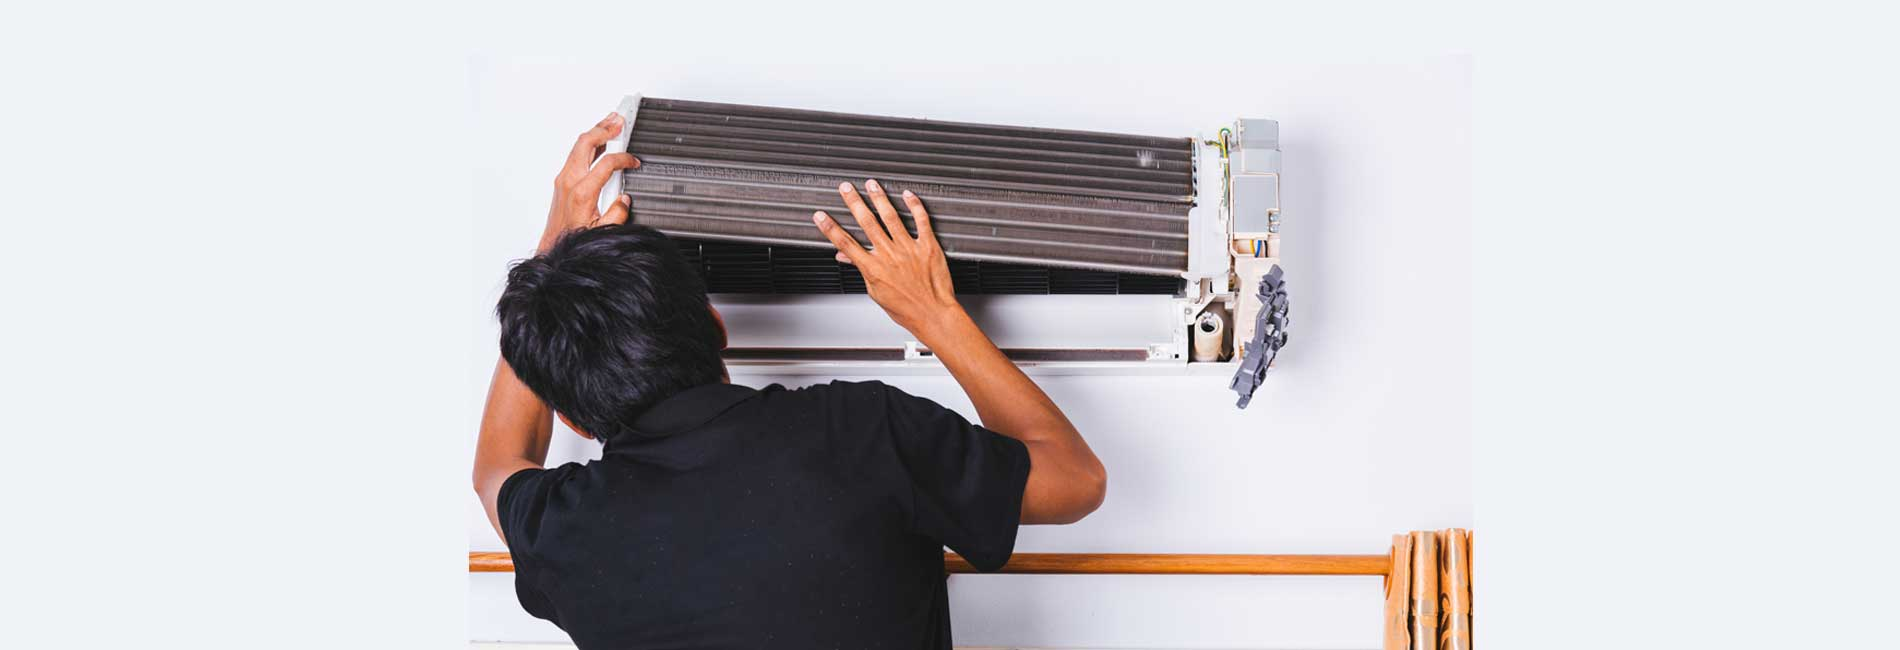 Air Conditioner Service in Kattankulathur